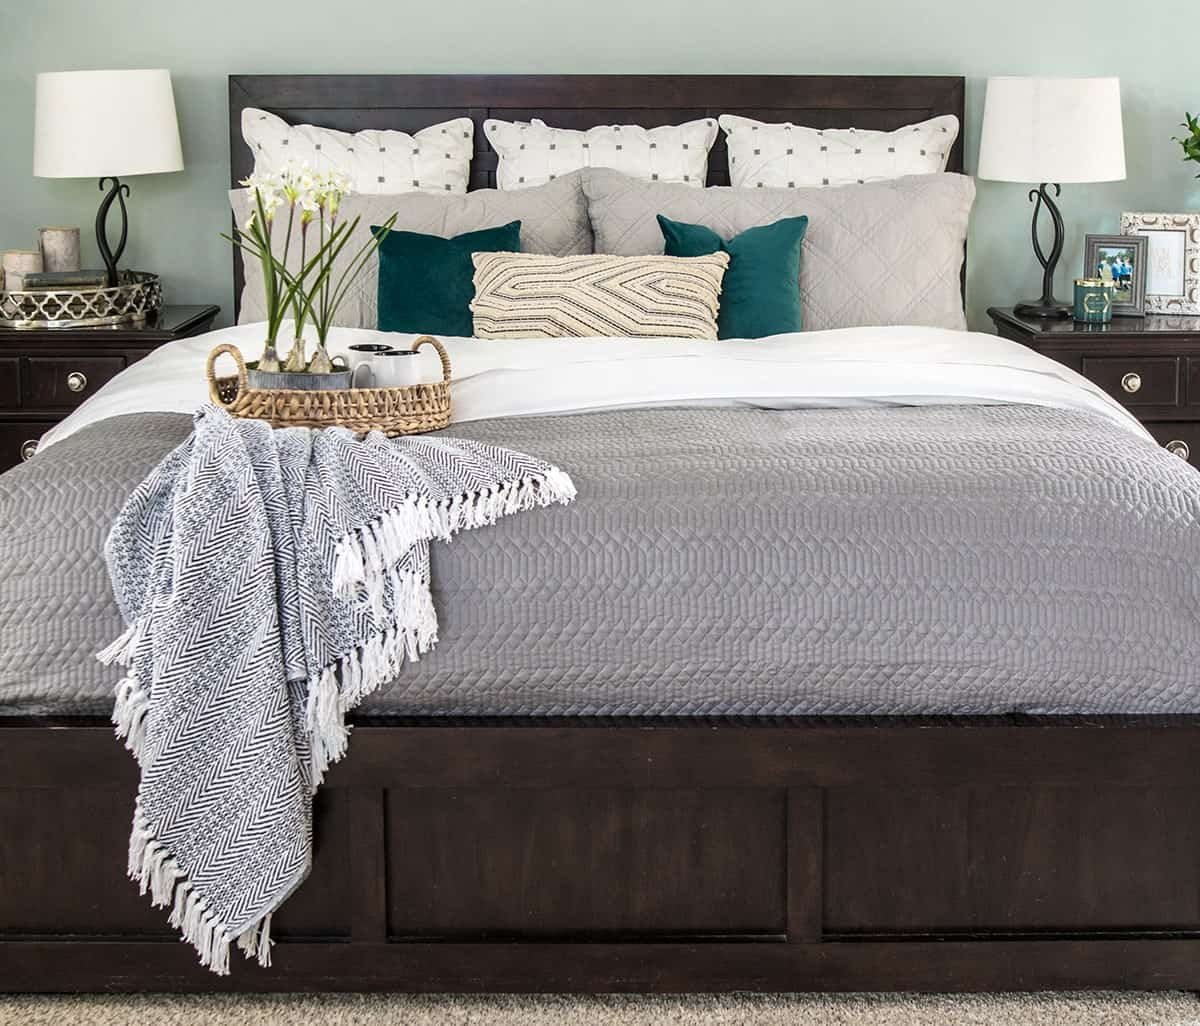 Cozy bed with gray quilt over white sheets. Layered neutral accent pillows with pops of green.